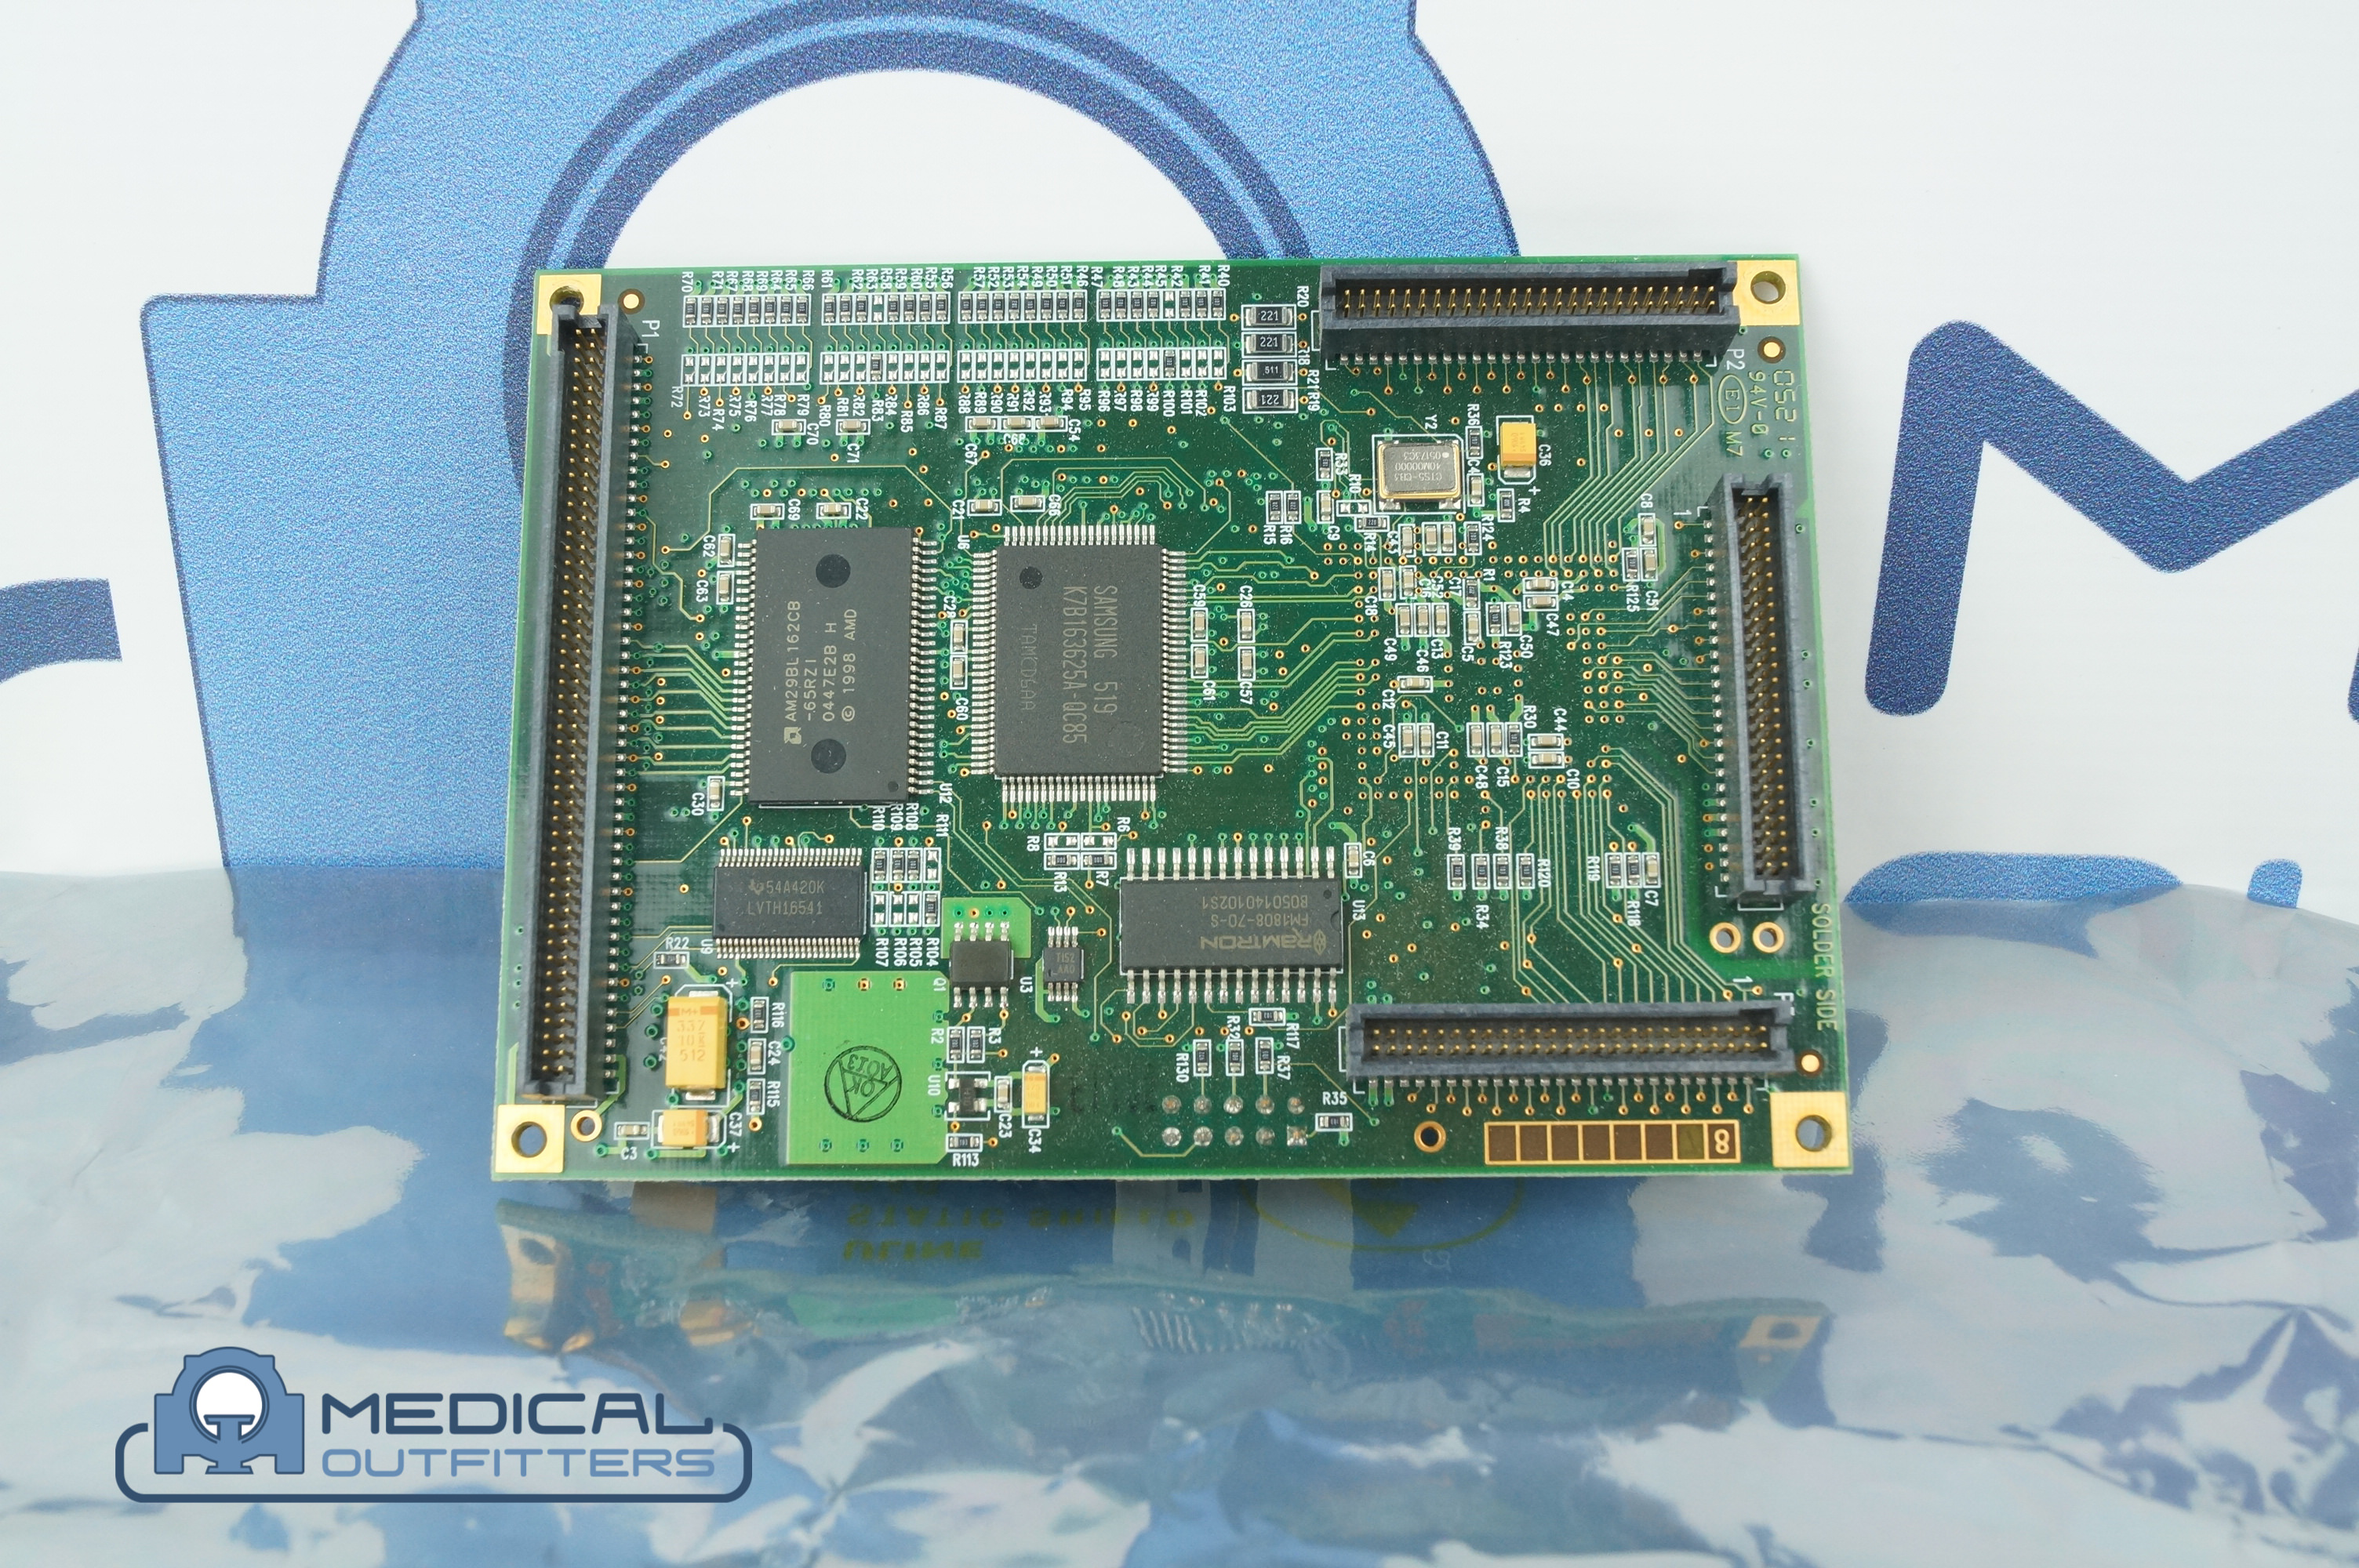 Philips 453567033831 CPM PCB w/ AMD Chip